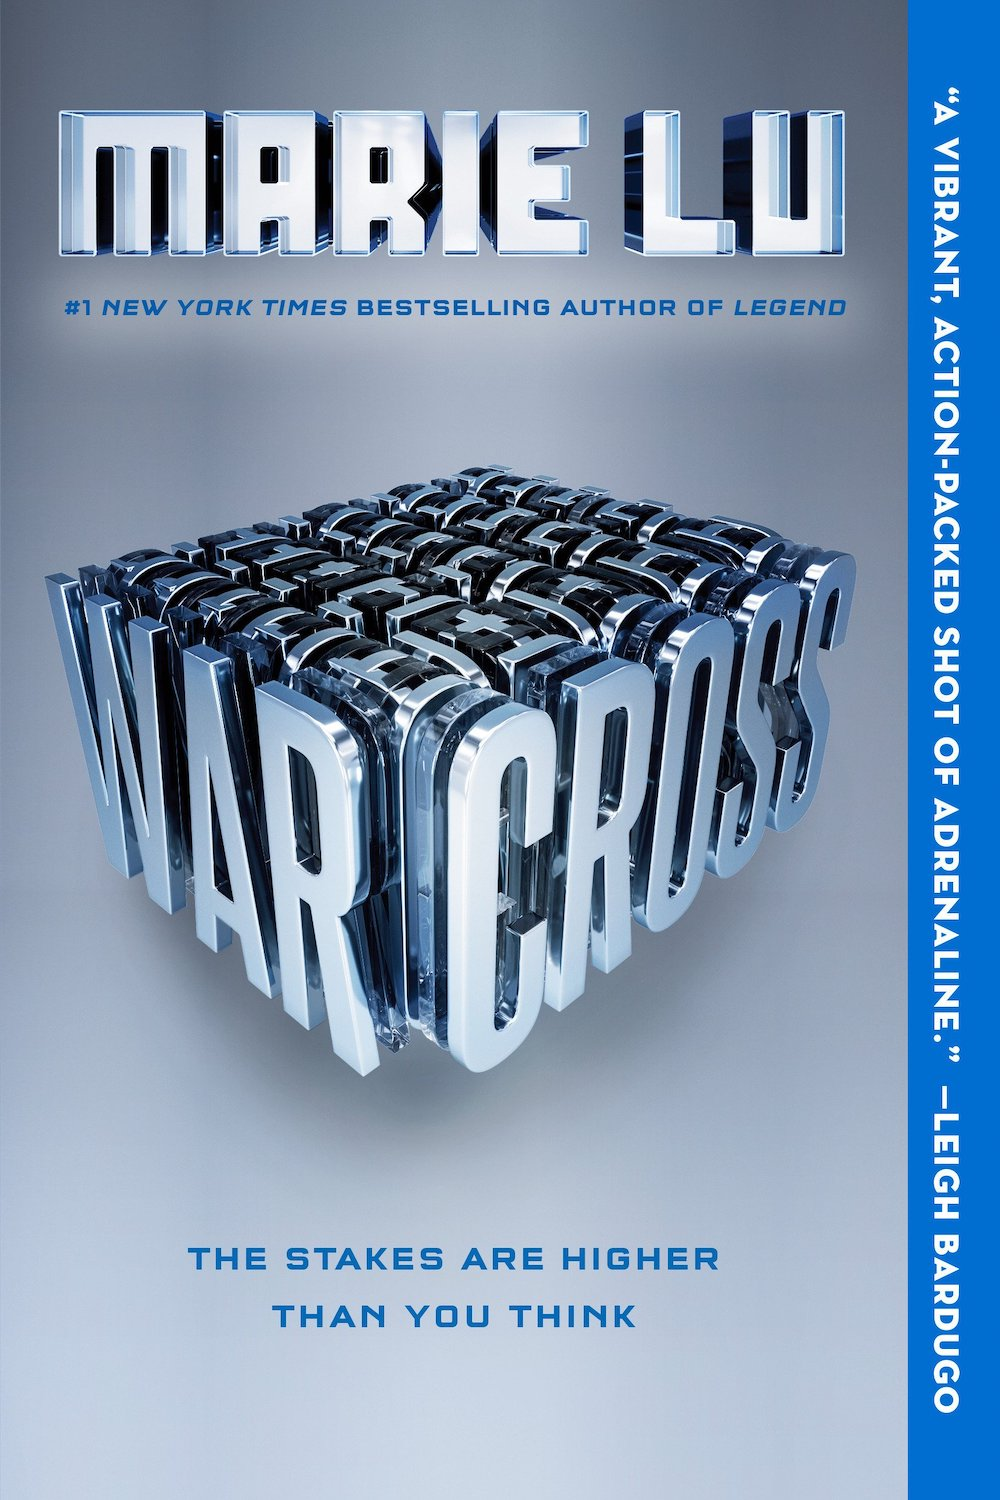 Books for kids who like video games: Warcross by Marie Lu